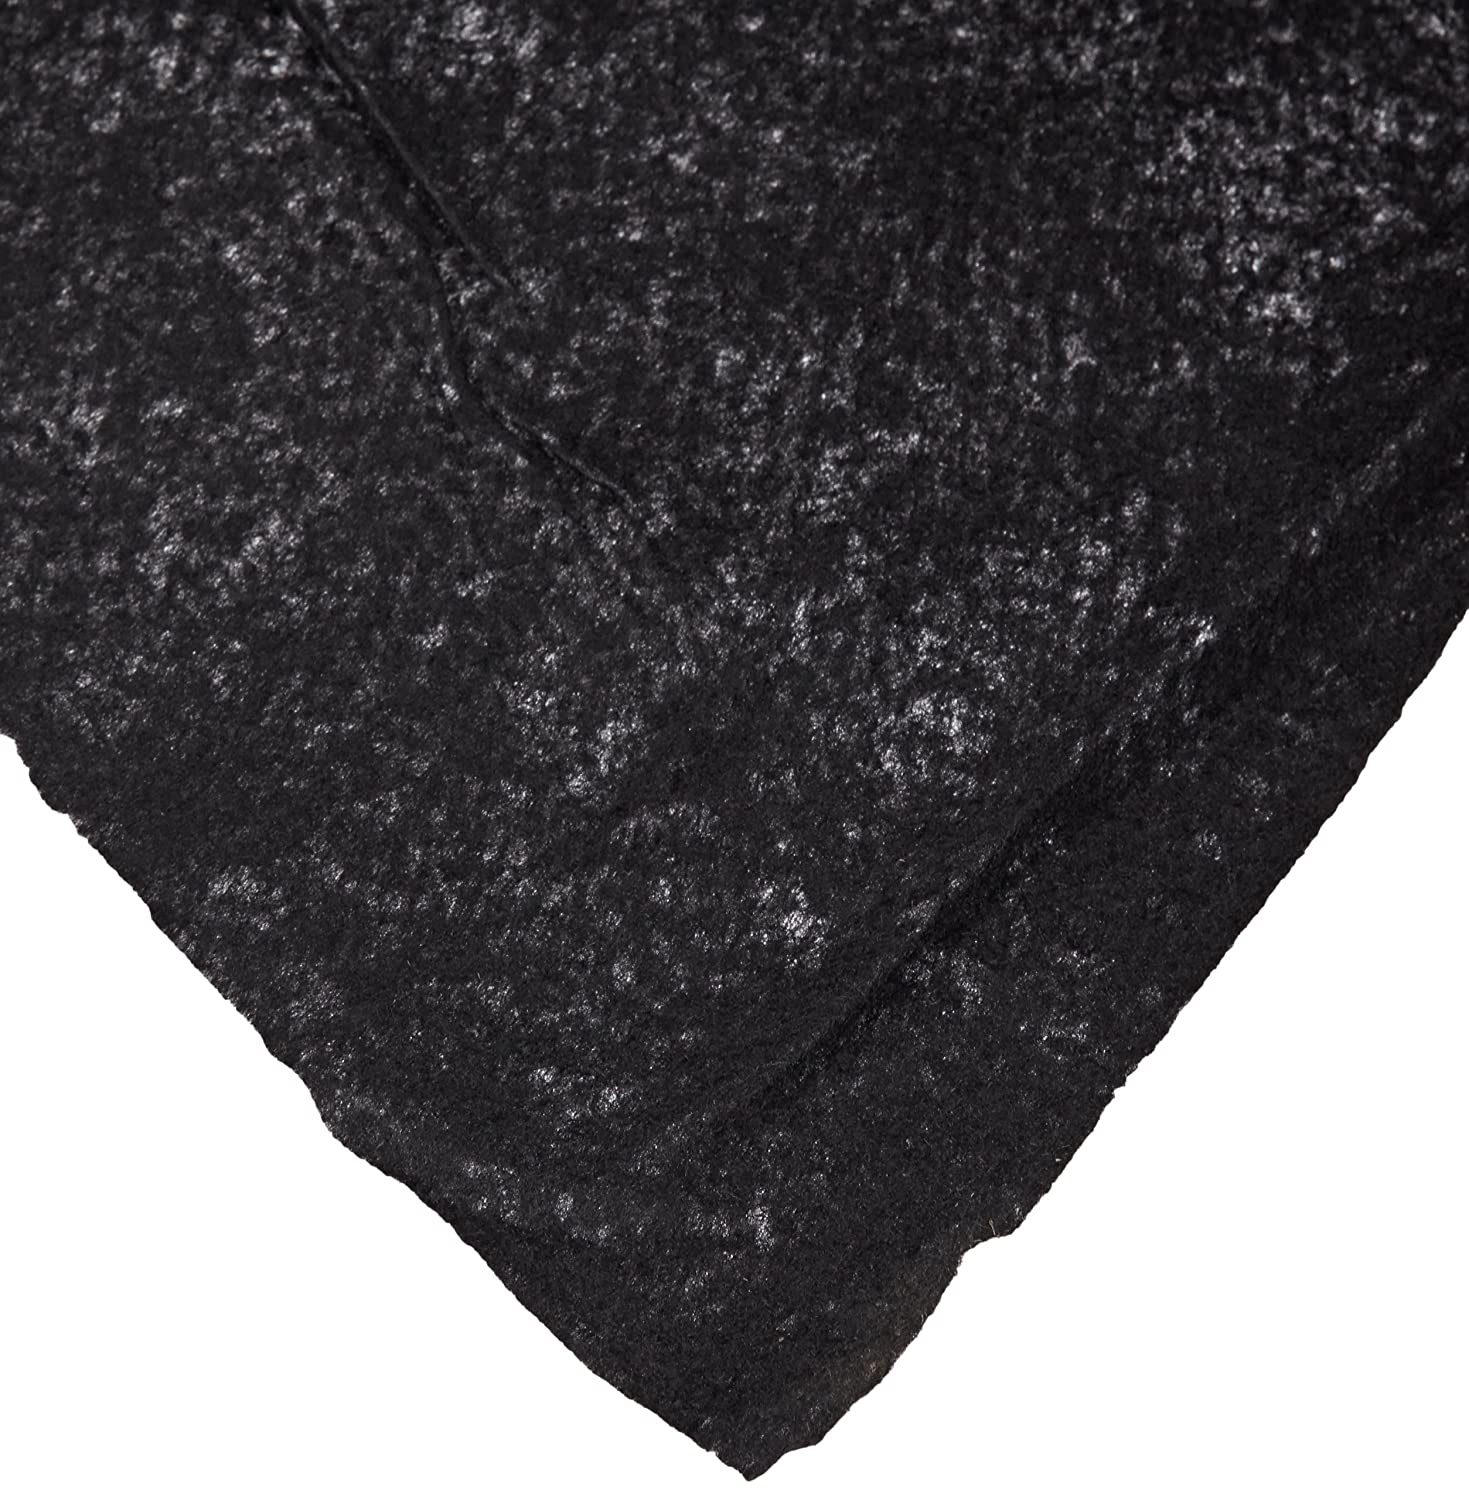 Mutual NW35 Non Woven Geotextile Polypropylene Fabric Cut Roll, 90 lbs Grab  Tensile Strength, 300' Length x 6' Width